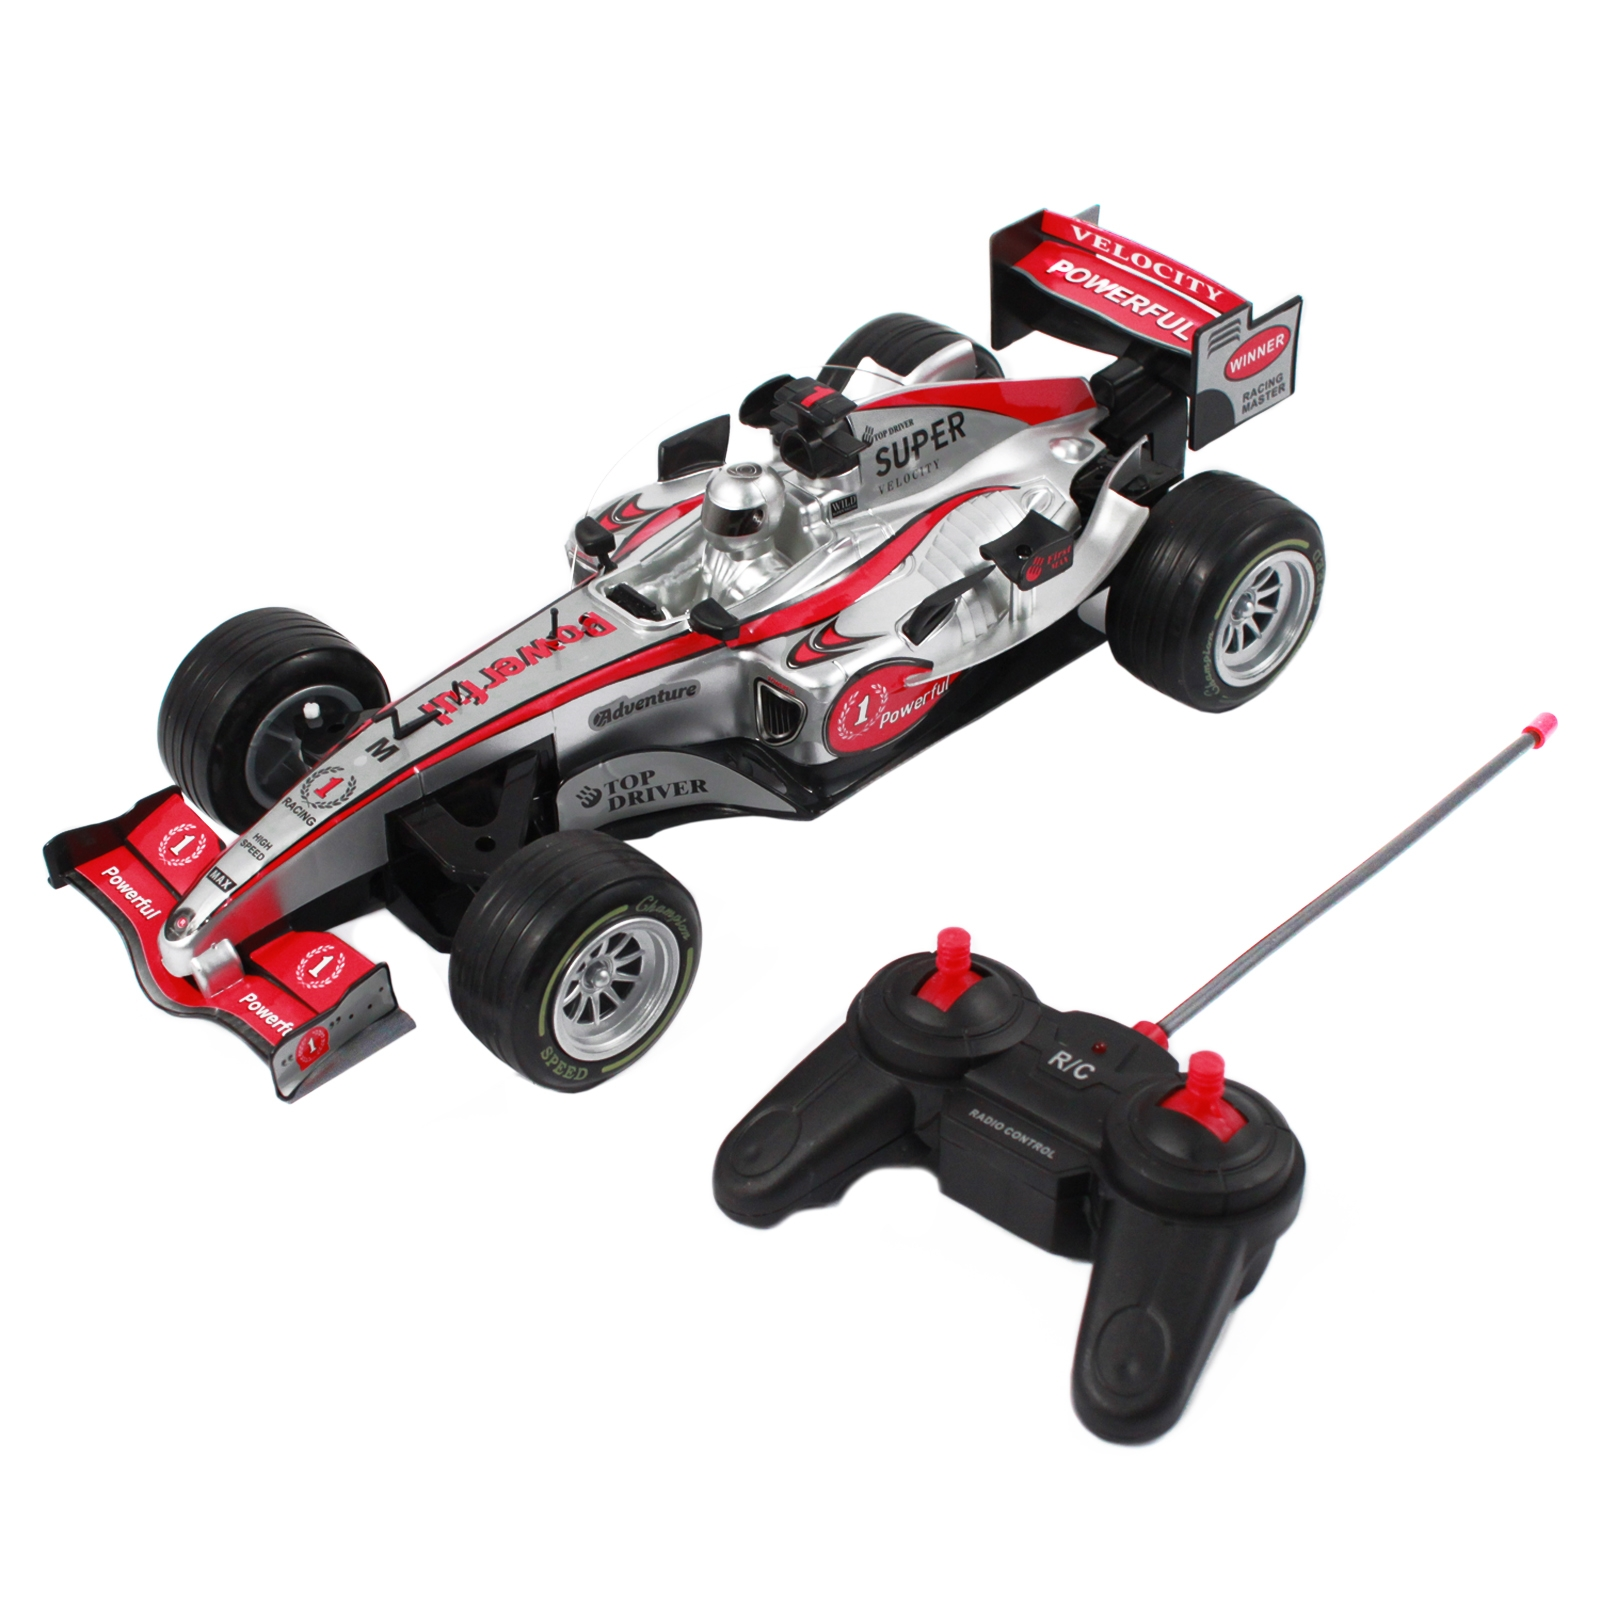 Pretend Play Race Car with Remote Control For Kids and Boys in Silver, Red, and Black Colors that is Fast with Cool Designs